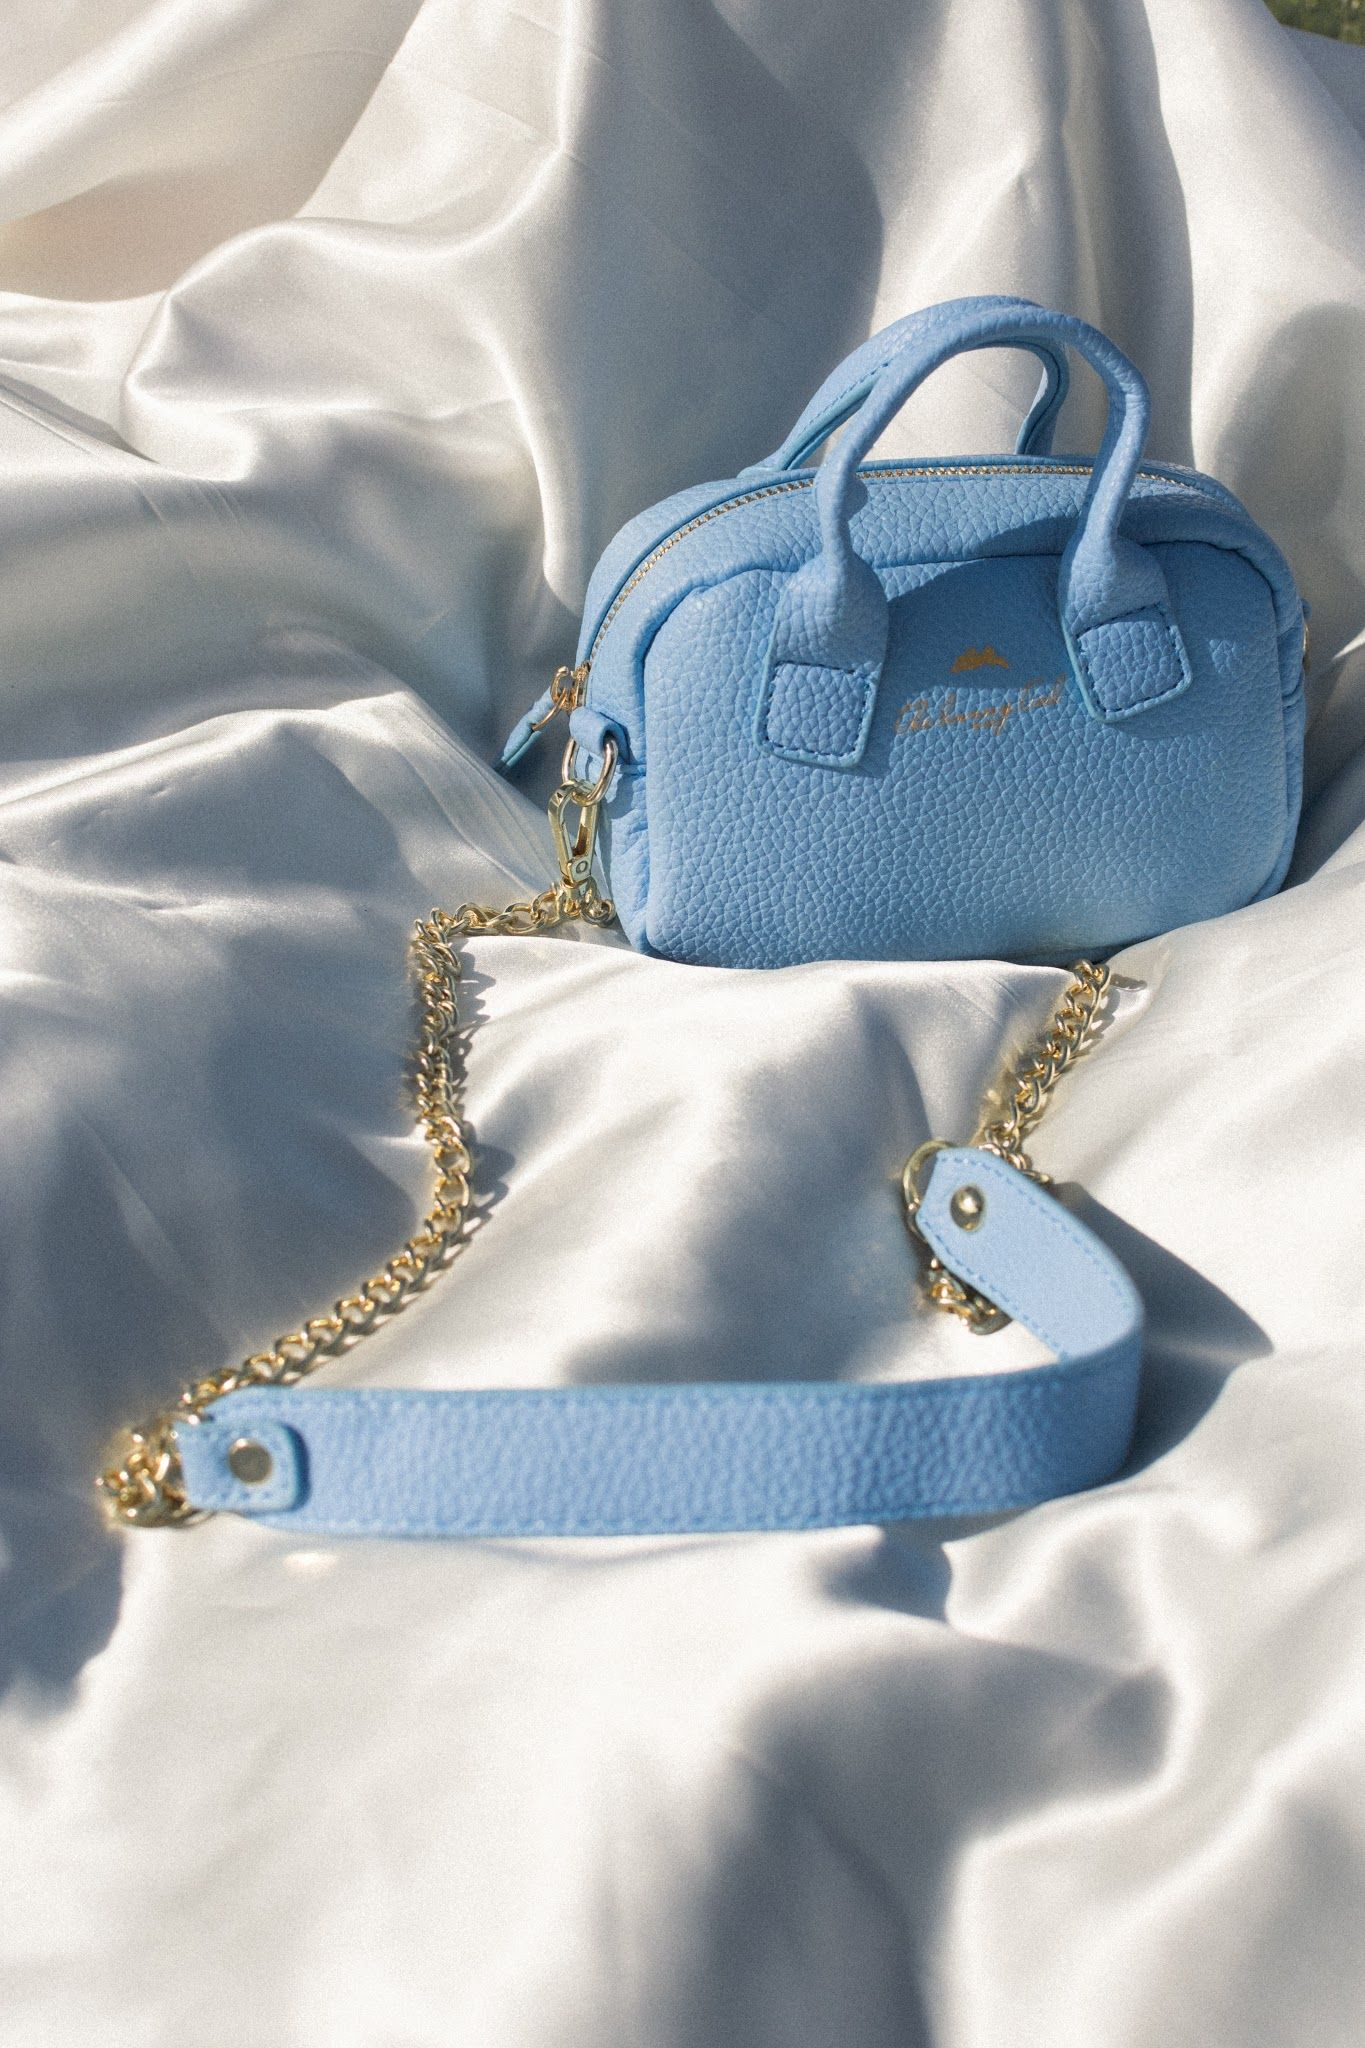 Blue Purses and Bags | @the.bunny.tail on insta